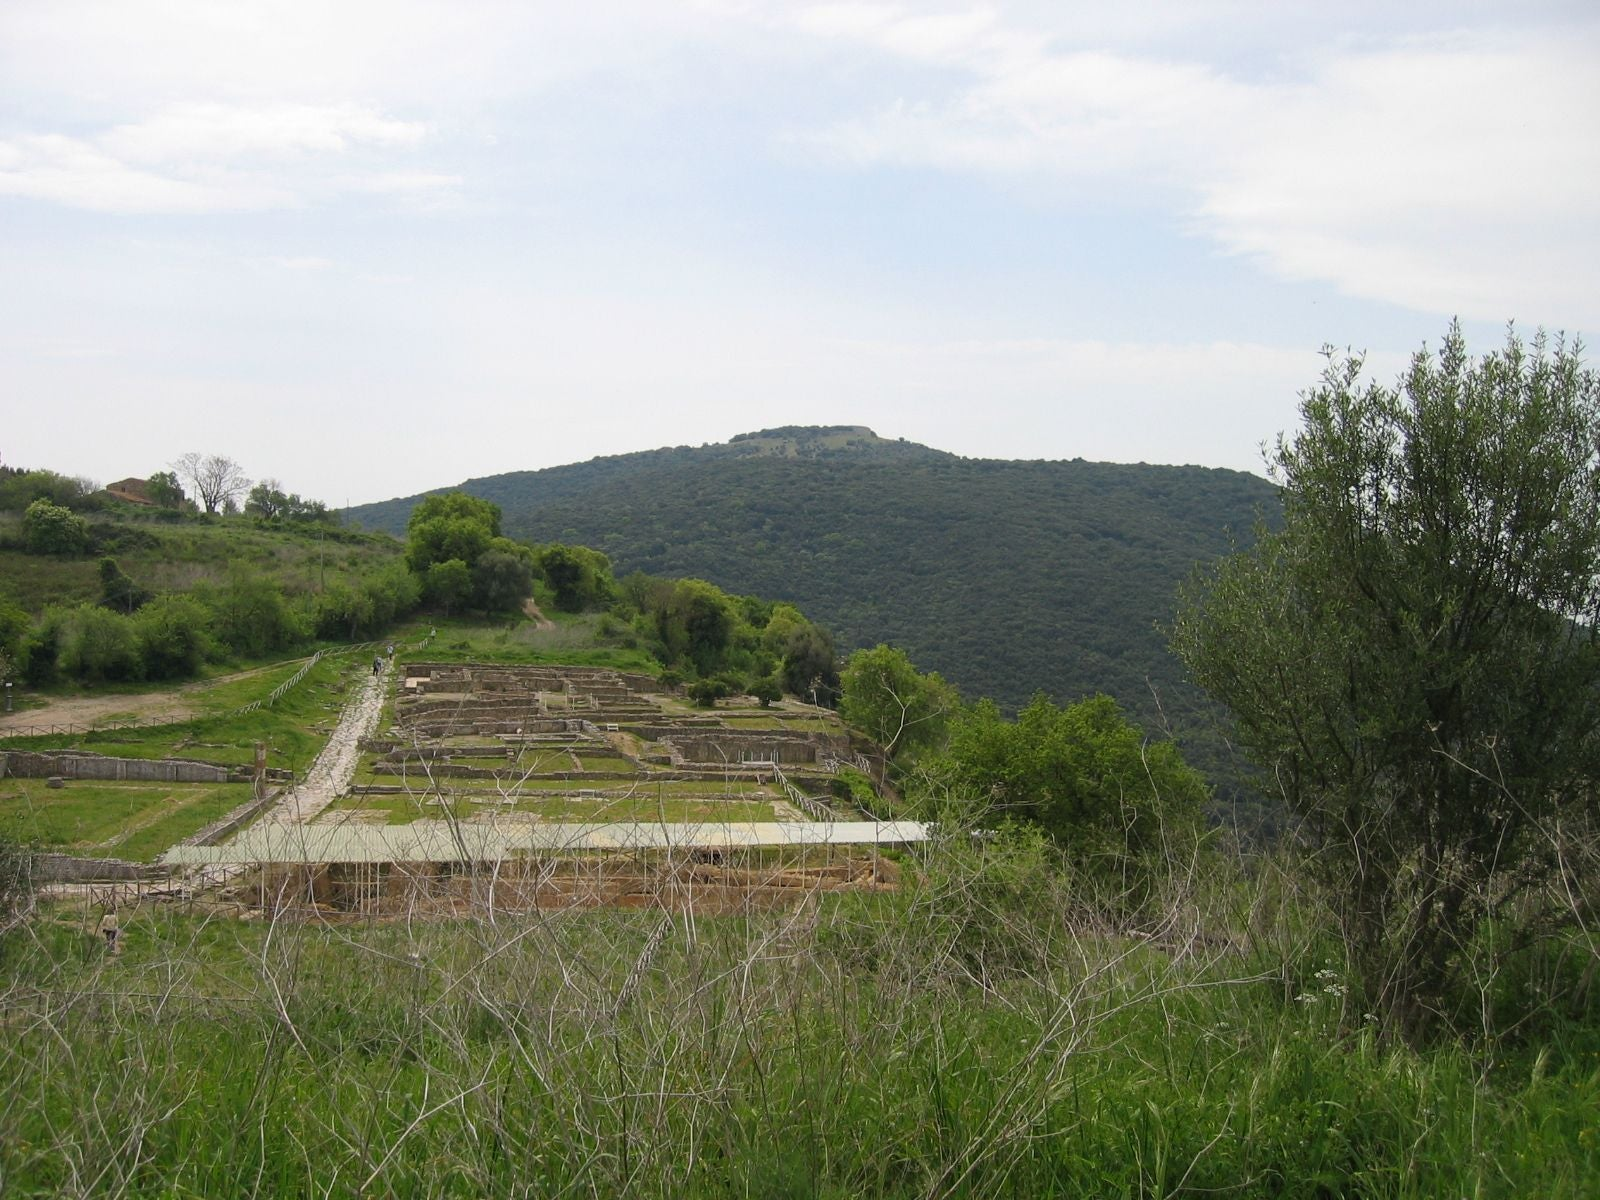 Parco archeologico di Roselle